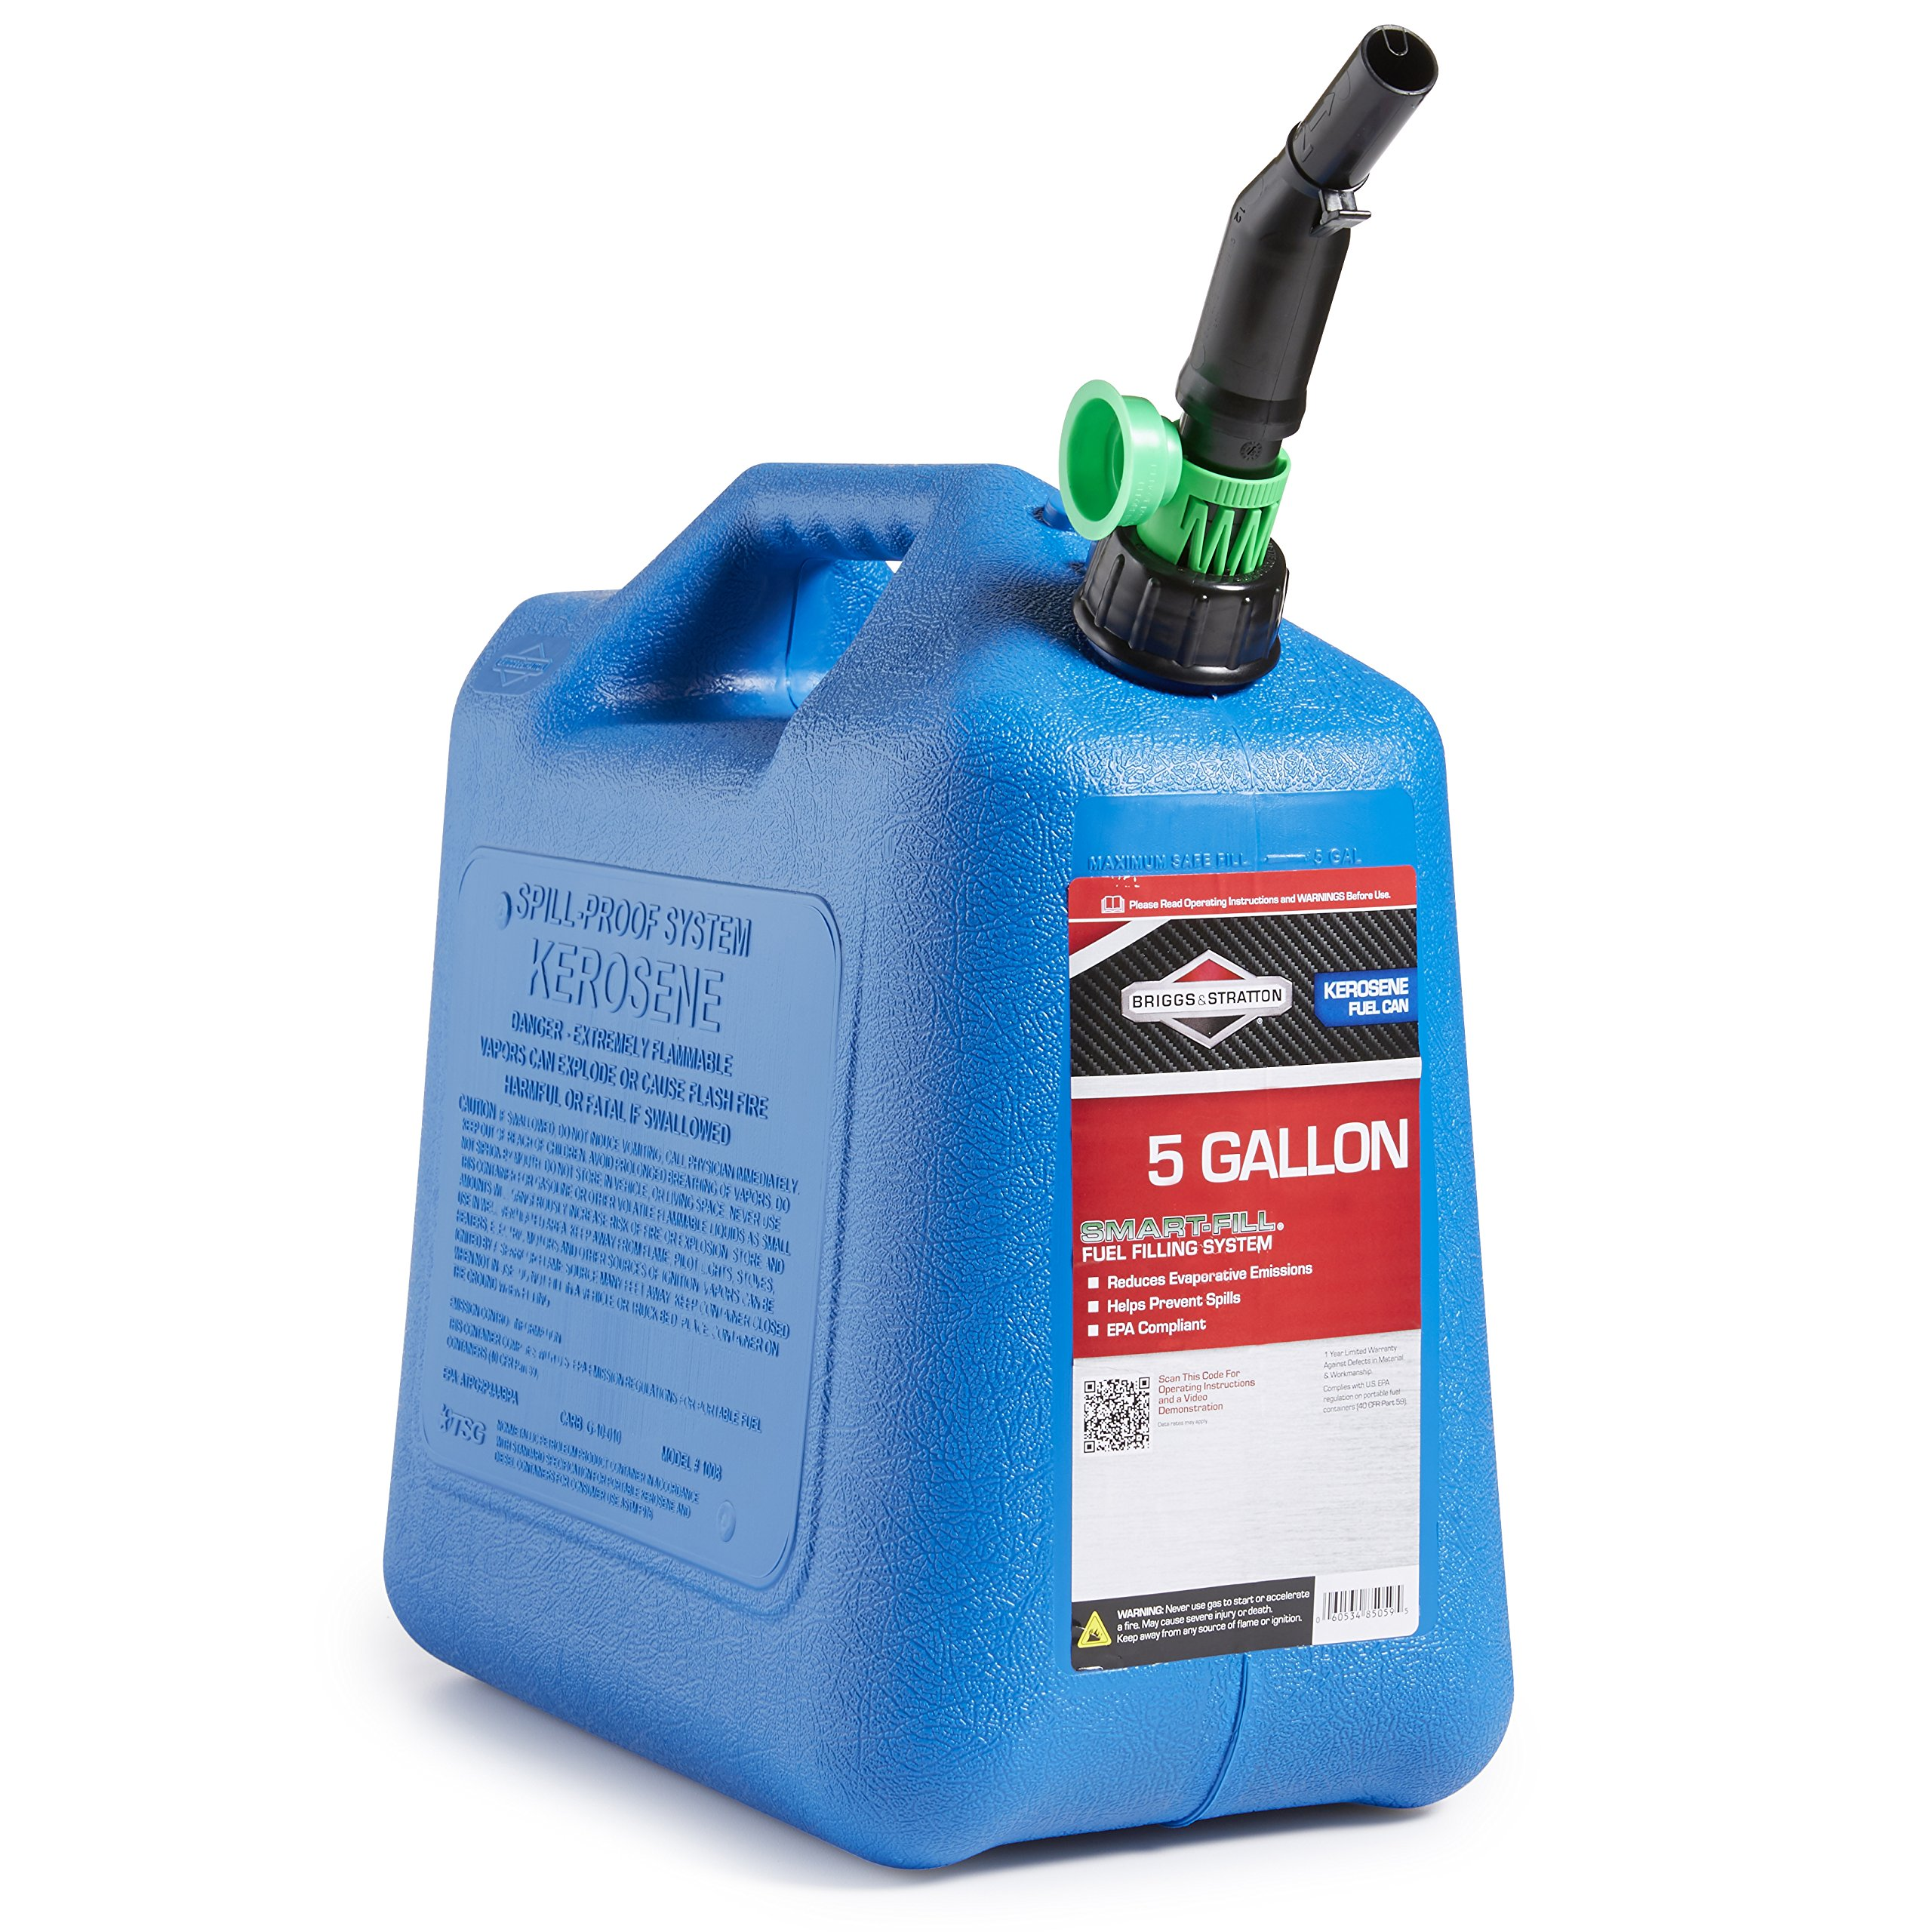 Briggs & Stratton 85059 5 Gallon Kerosene Can